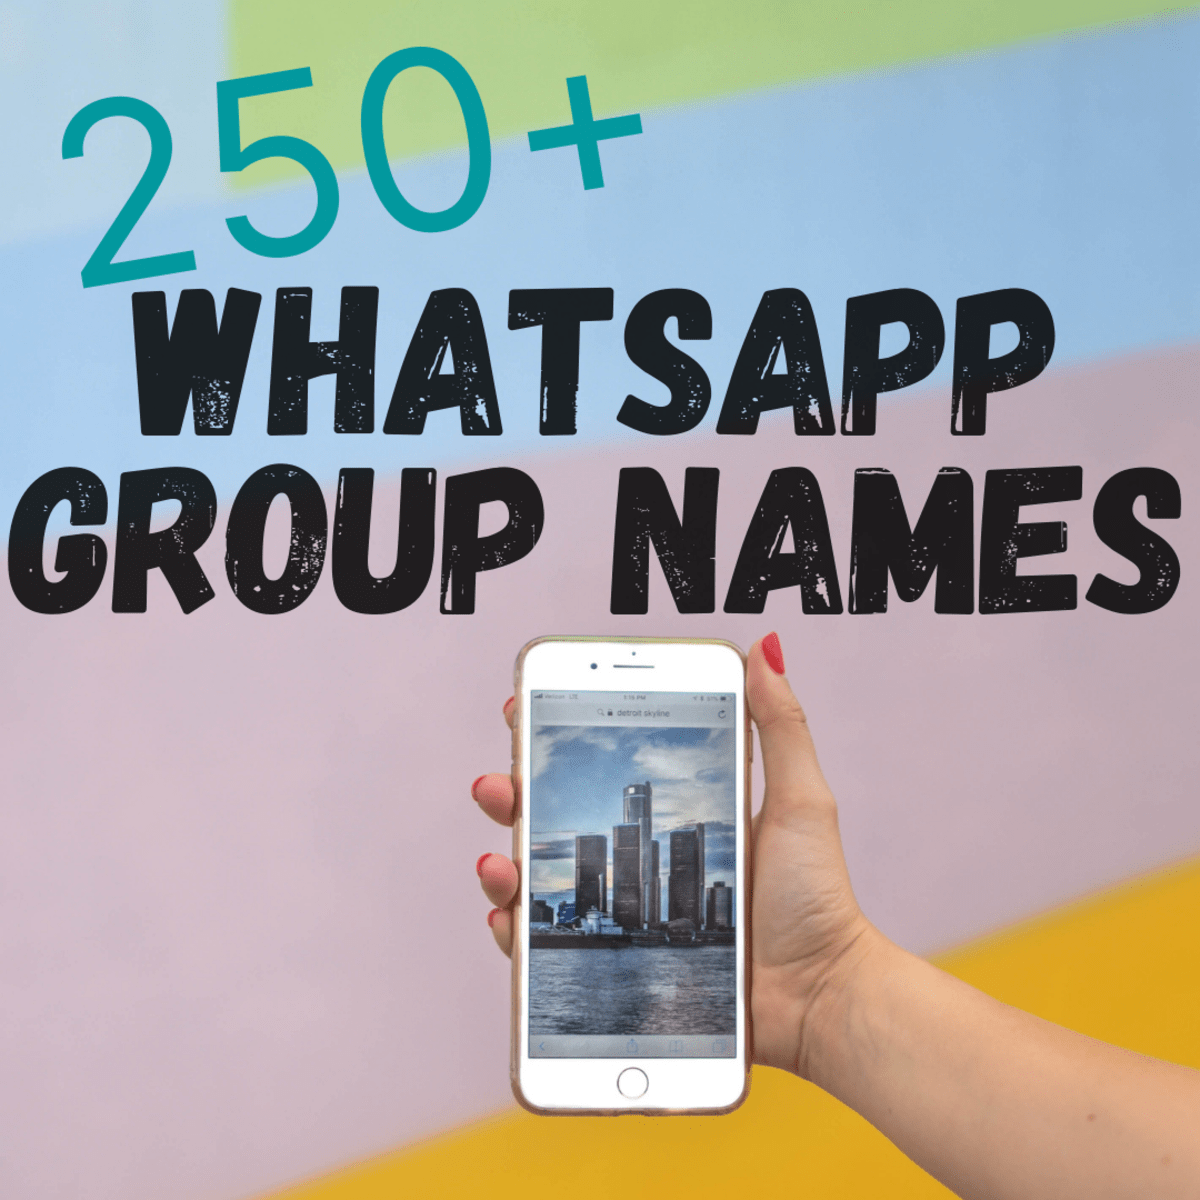 250 Best Whatsapp Group Names For Friends And Family Turbofuture Technology